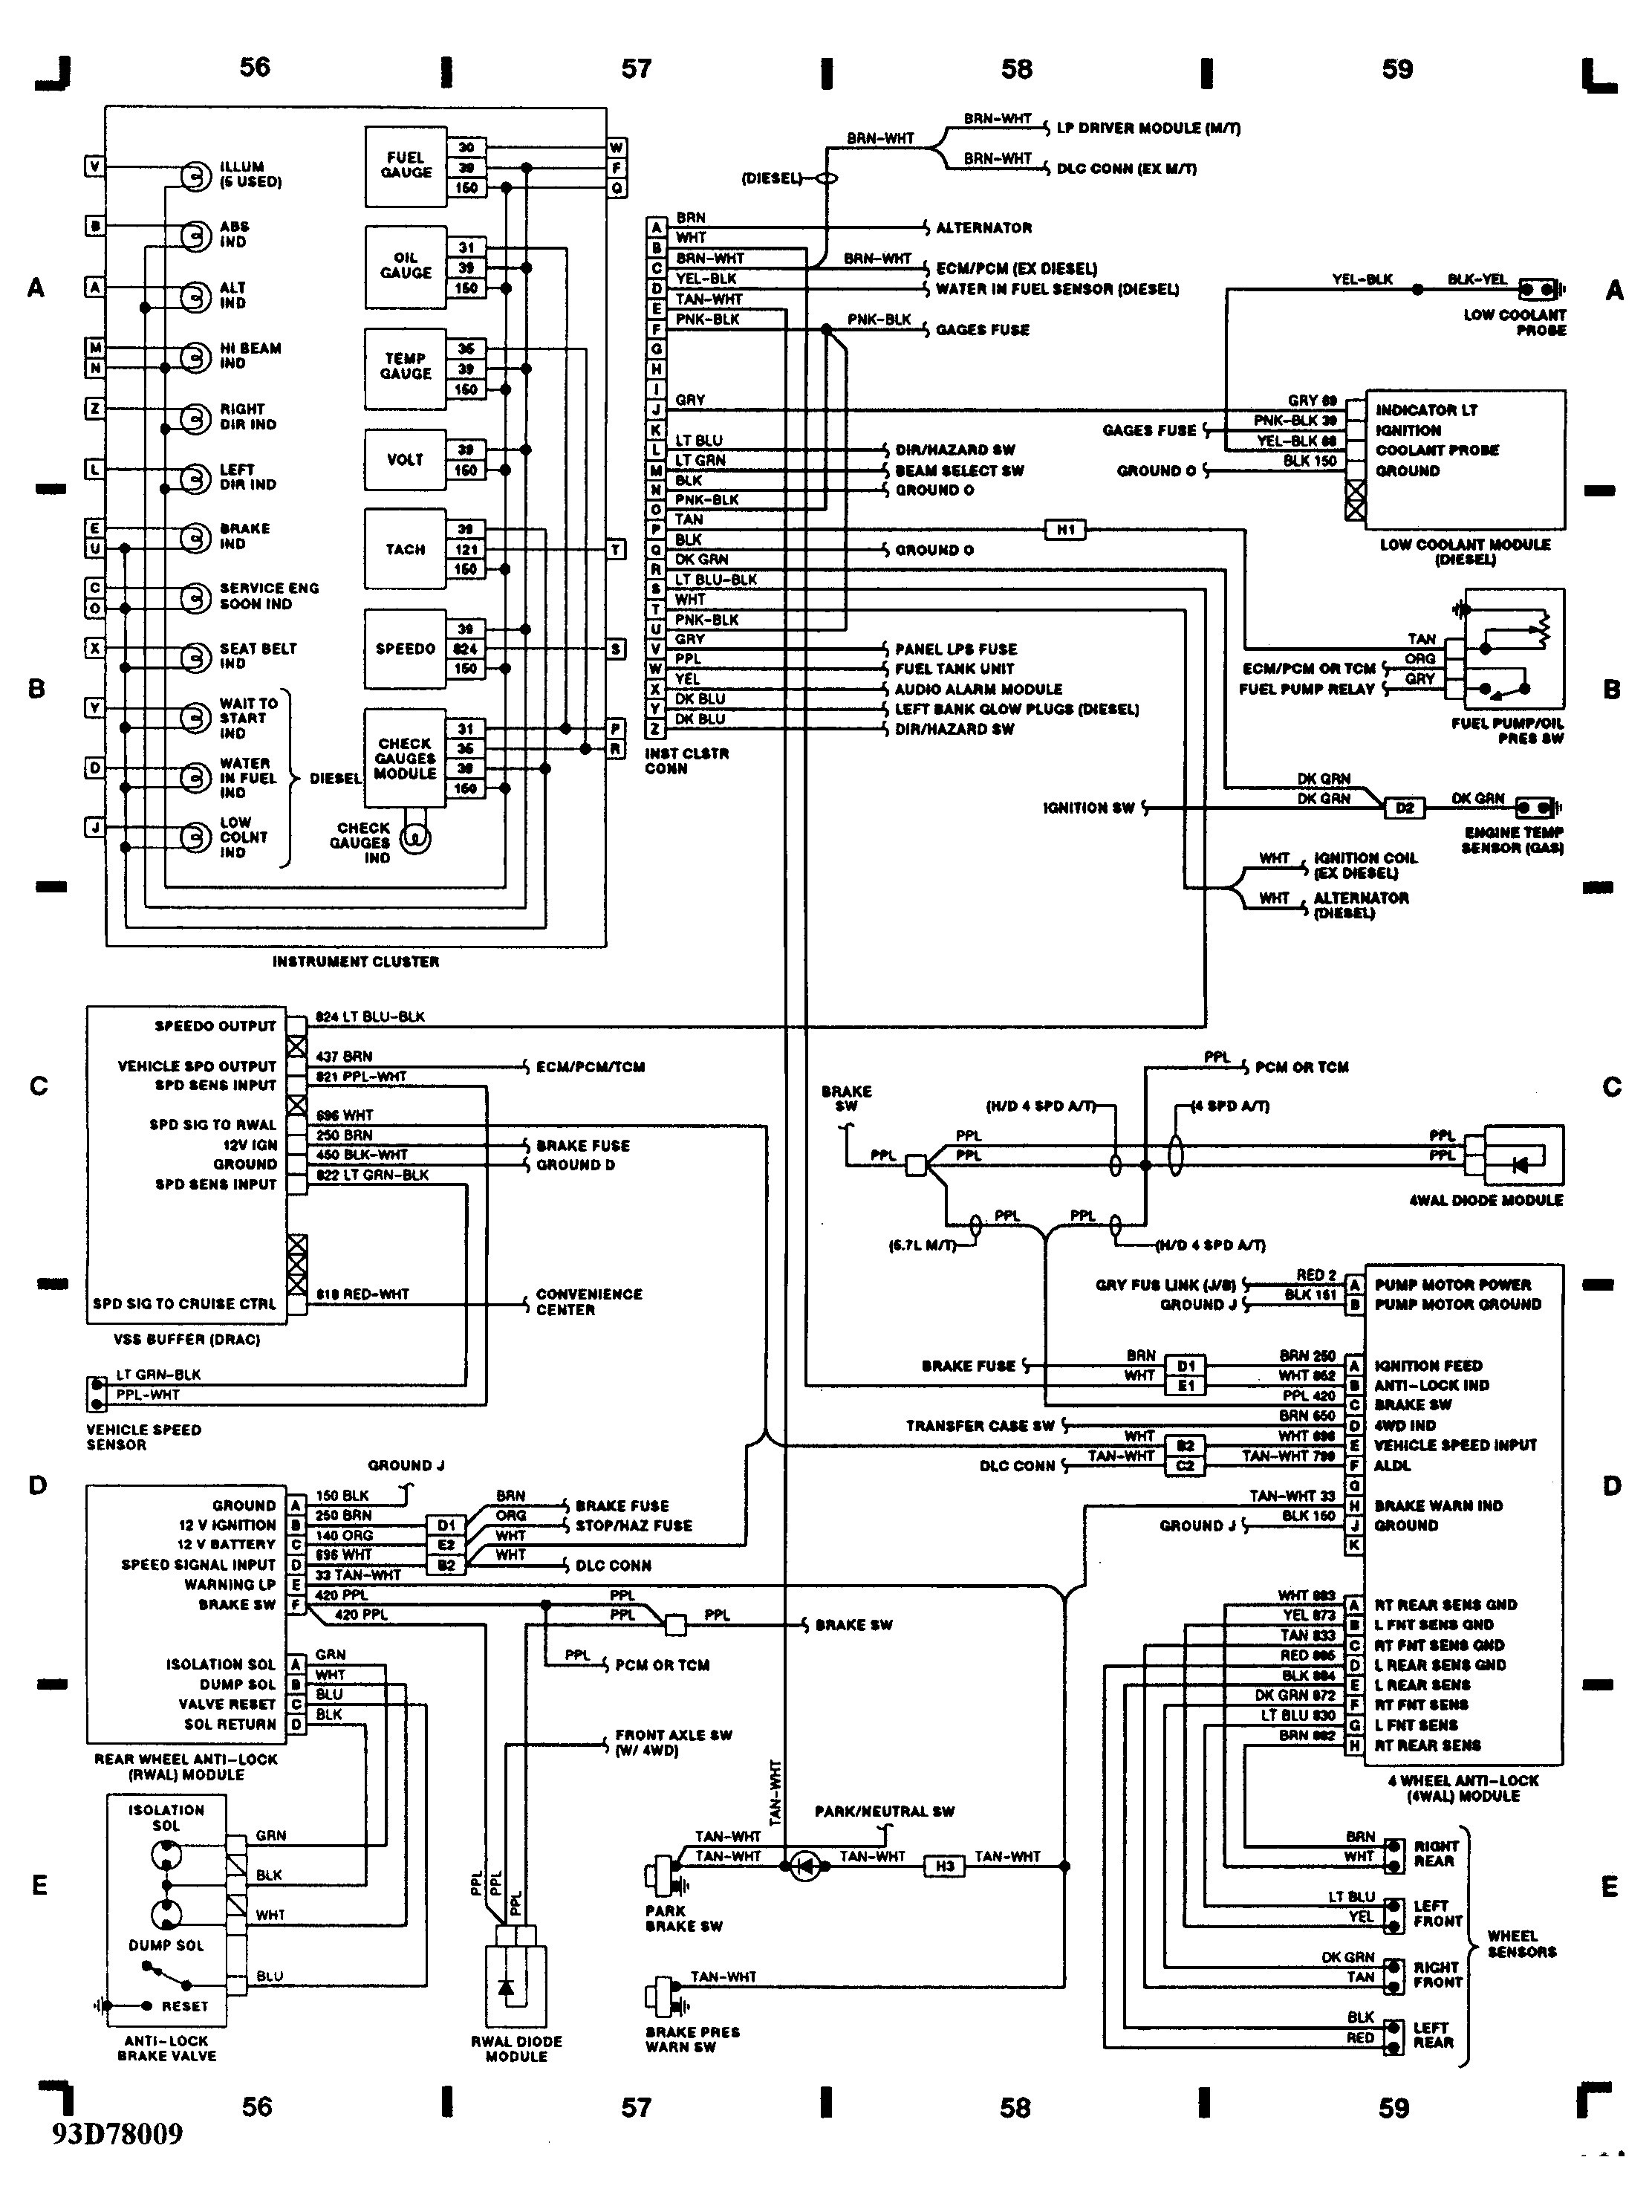 1993 mustang wiring harness explained wiring diagrams 1995 mustang wiring harness diagram awesome 1993 mustang wiring diagram wiring diagram image wiring harness wiring diagram 1993 mustang wiring harness